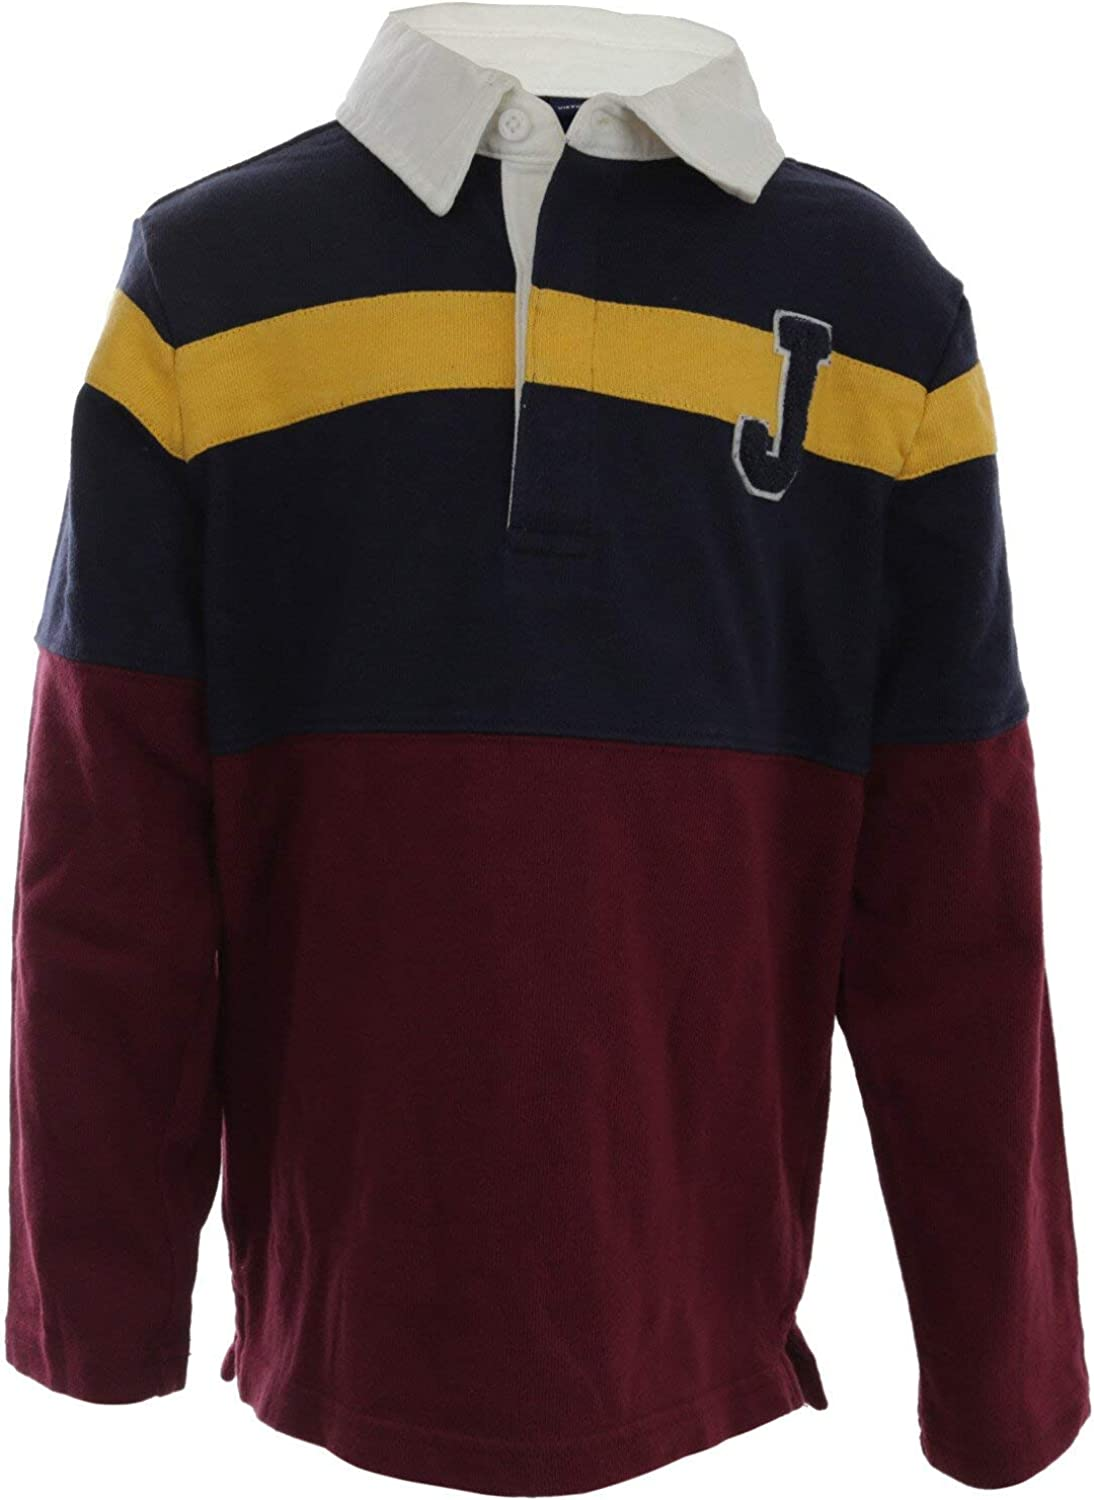 Janie and Jack Colorblocked Patch Rugby Shirt Polo - 5 - Burgundy